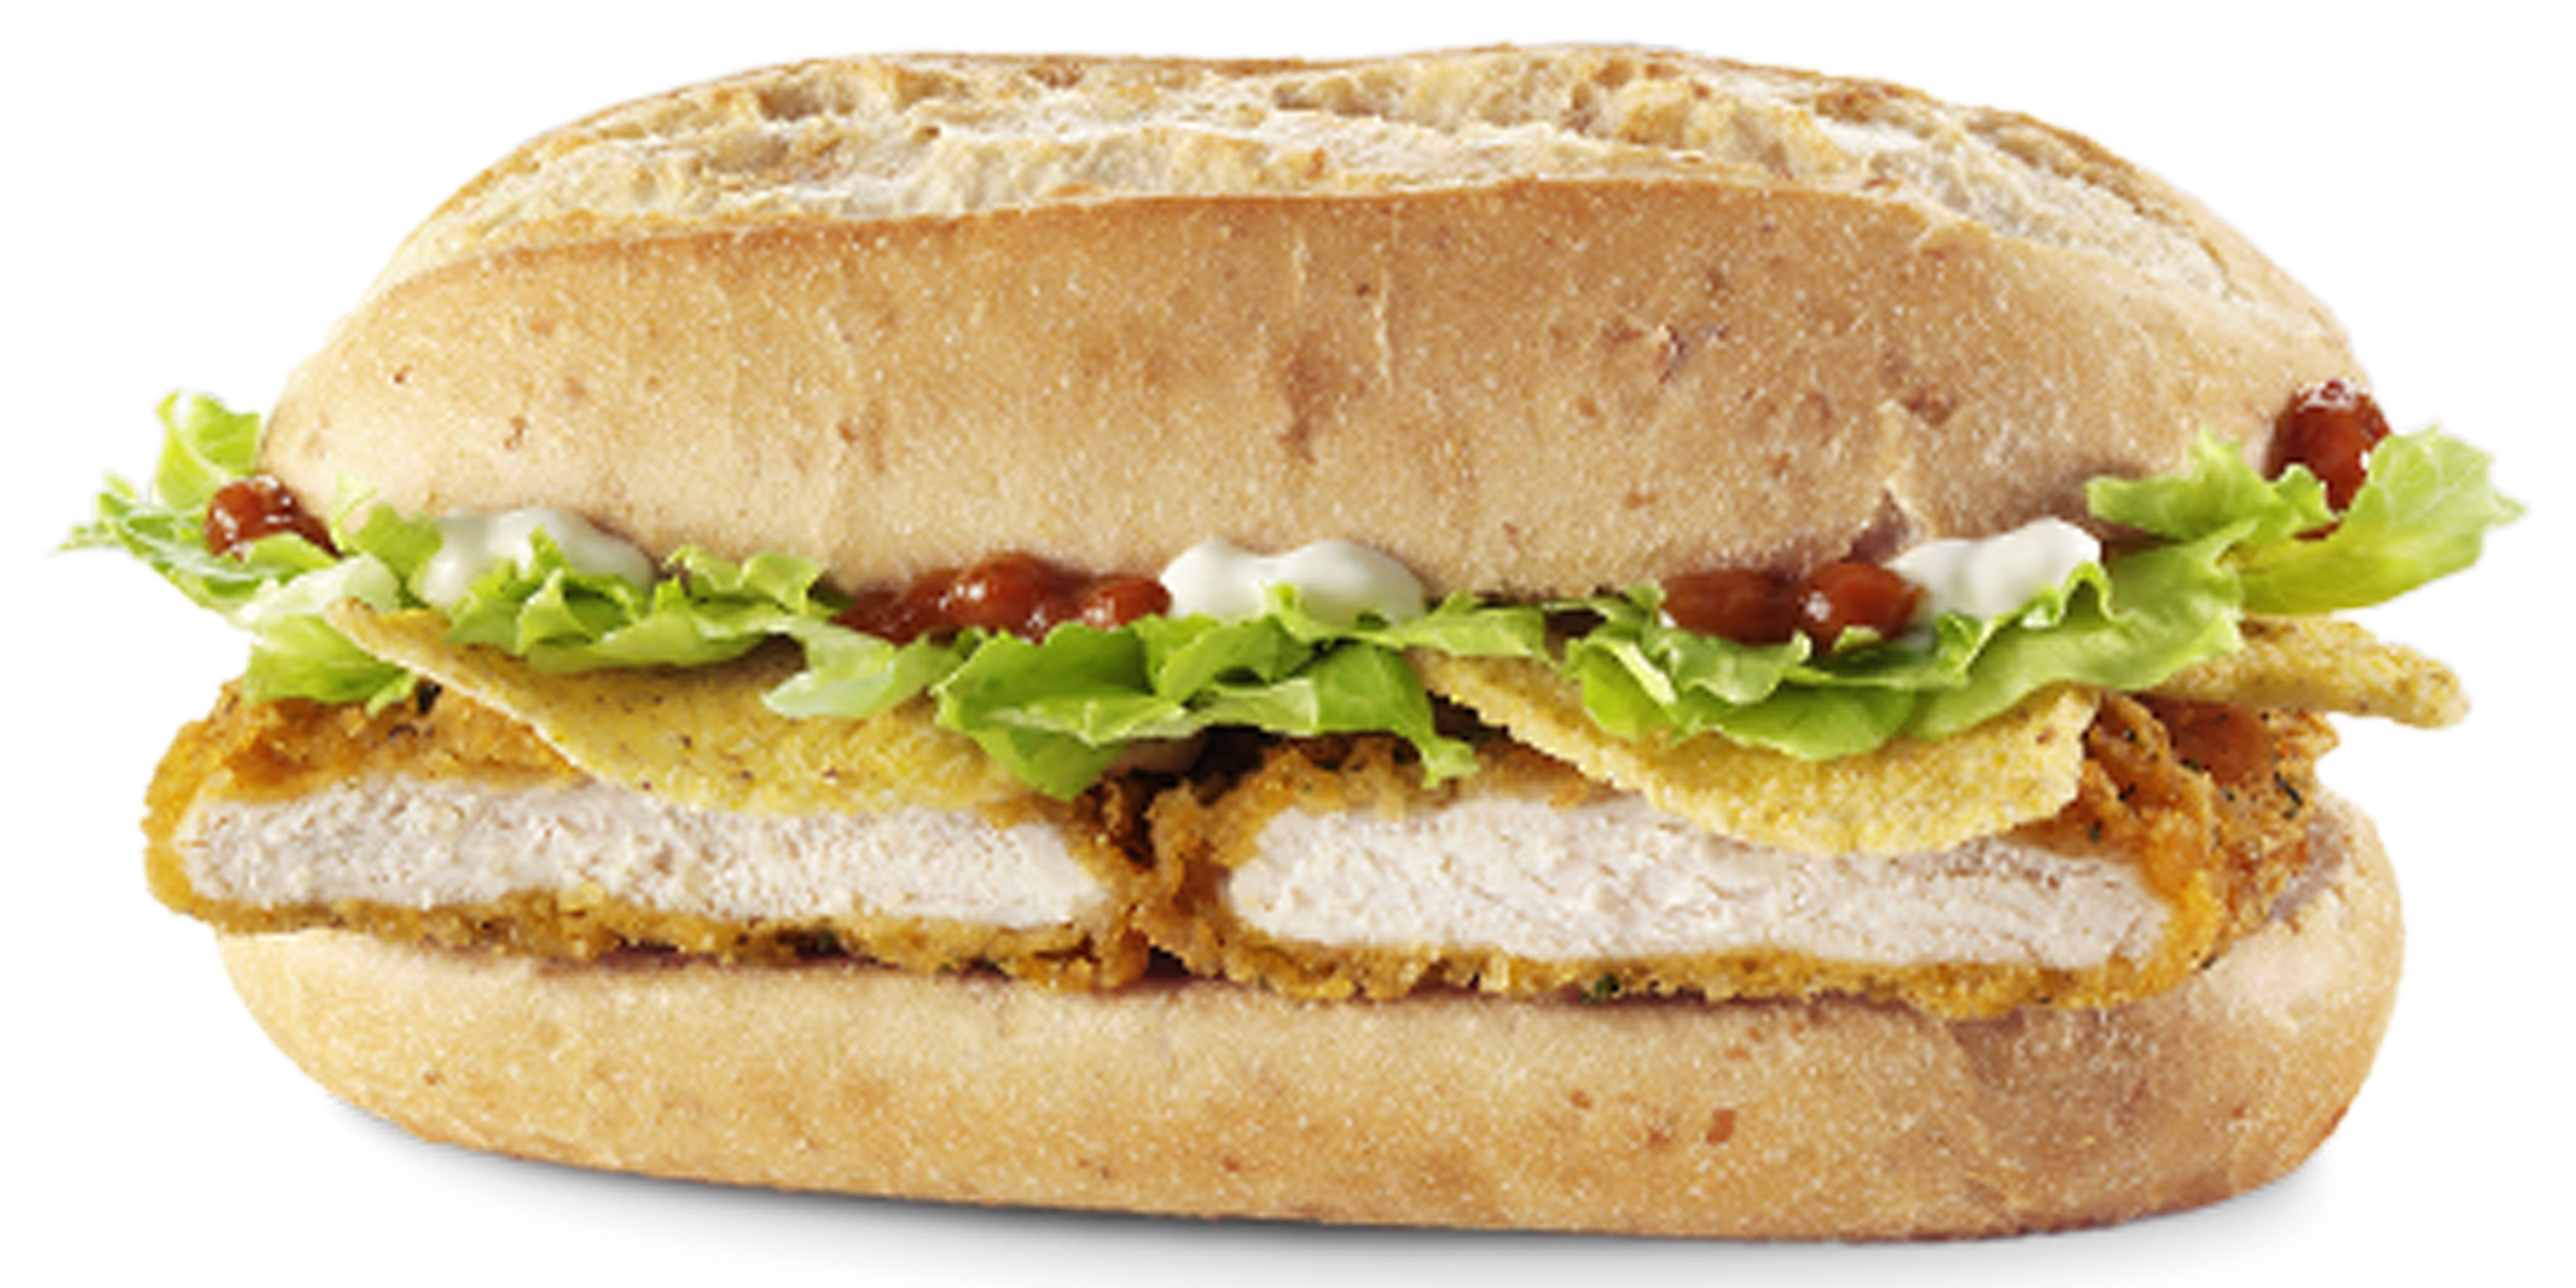 Amazing McDonalds Meals You Never Knew Existed - 20 mcdonalds meals didnt even know existed